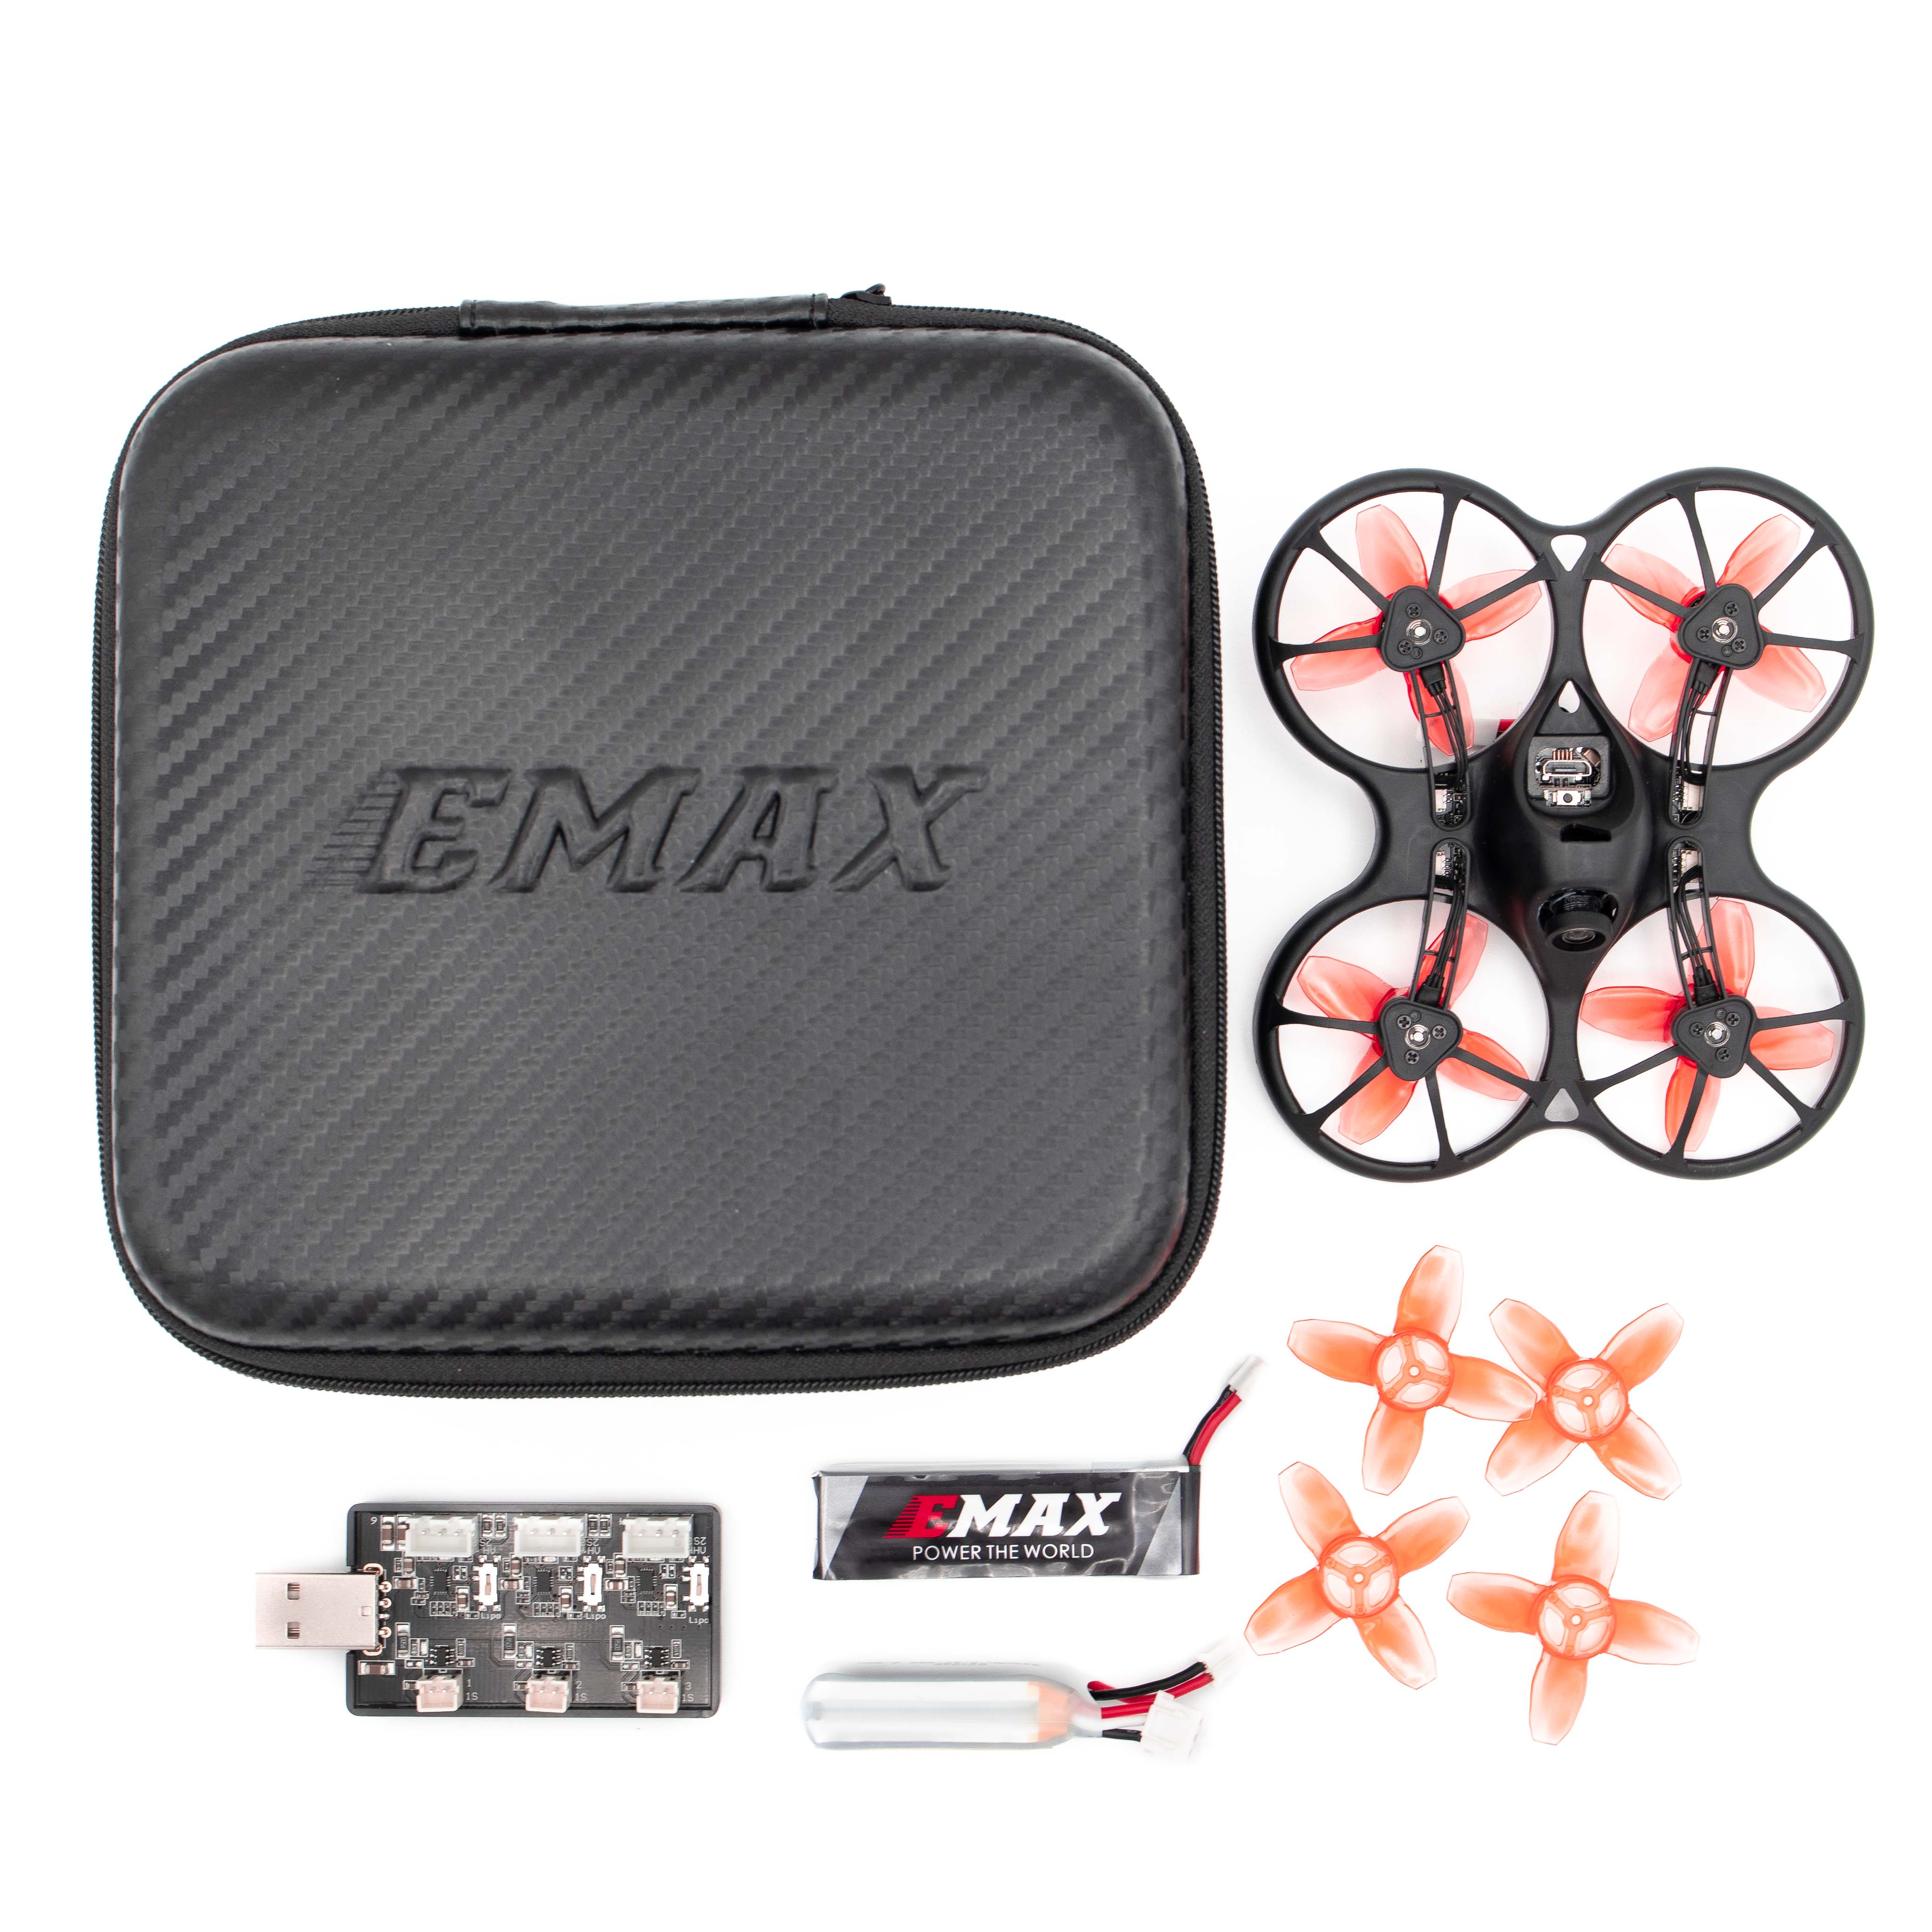 Image 3 - Hot Sales RC Helicopters EMAX Tinyhawk S 75mm F4 OSD 1   2S Micro Indoor FPV Racing Drone BNF 600TVL CMOS Camera Brushles-in Parts & Accessories from Toys & Hobbies